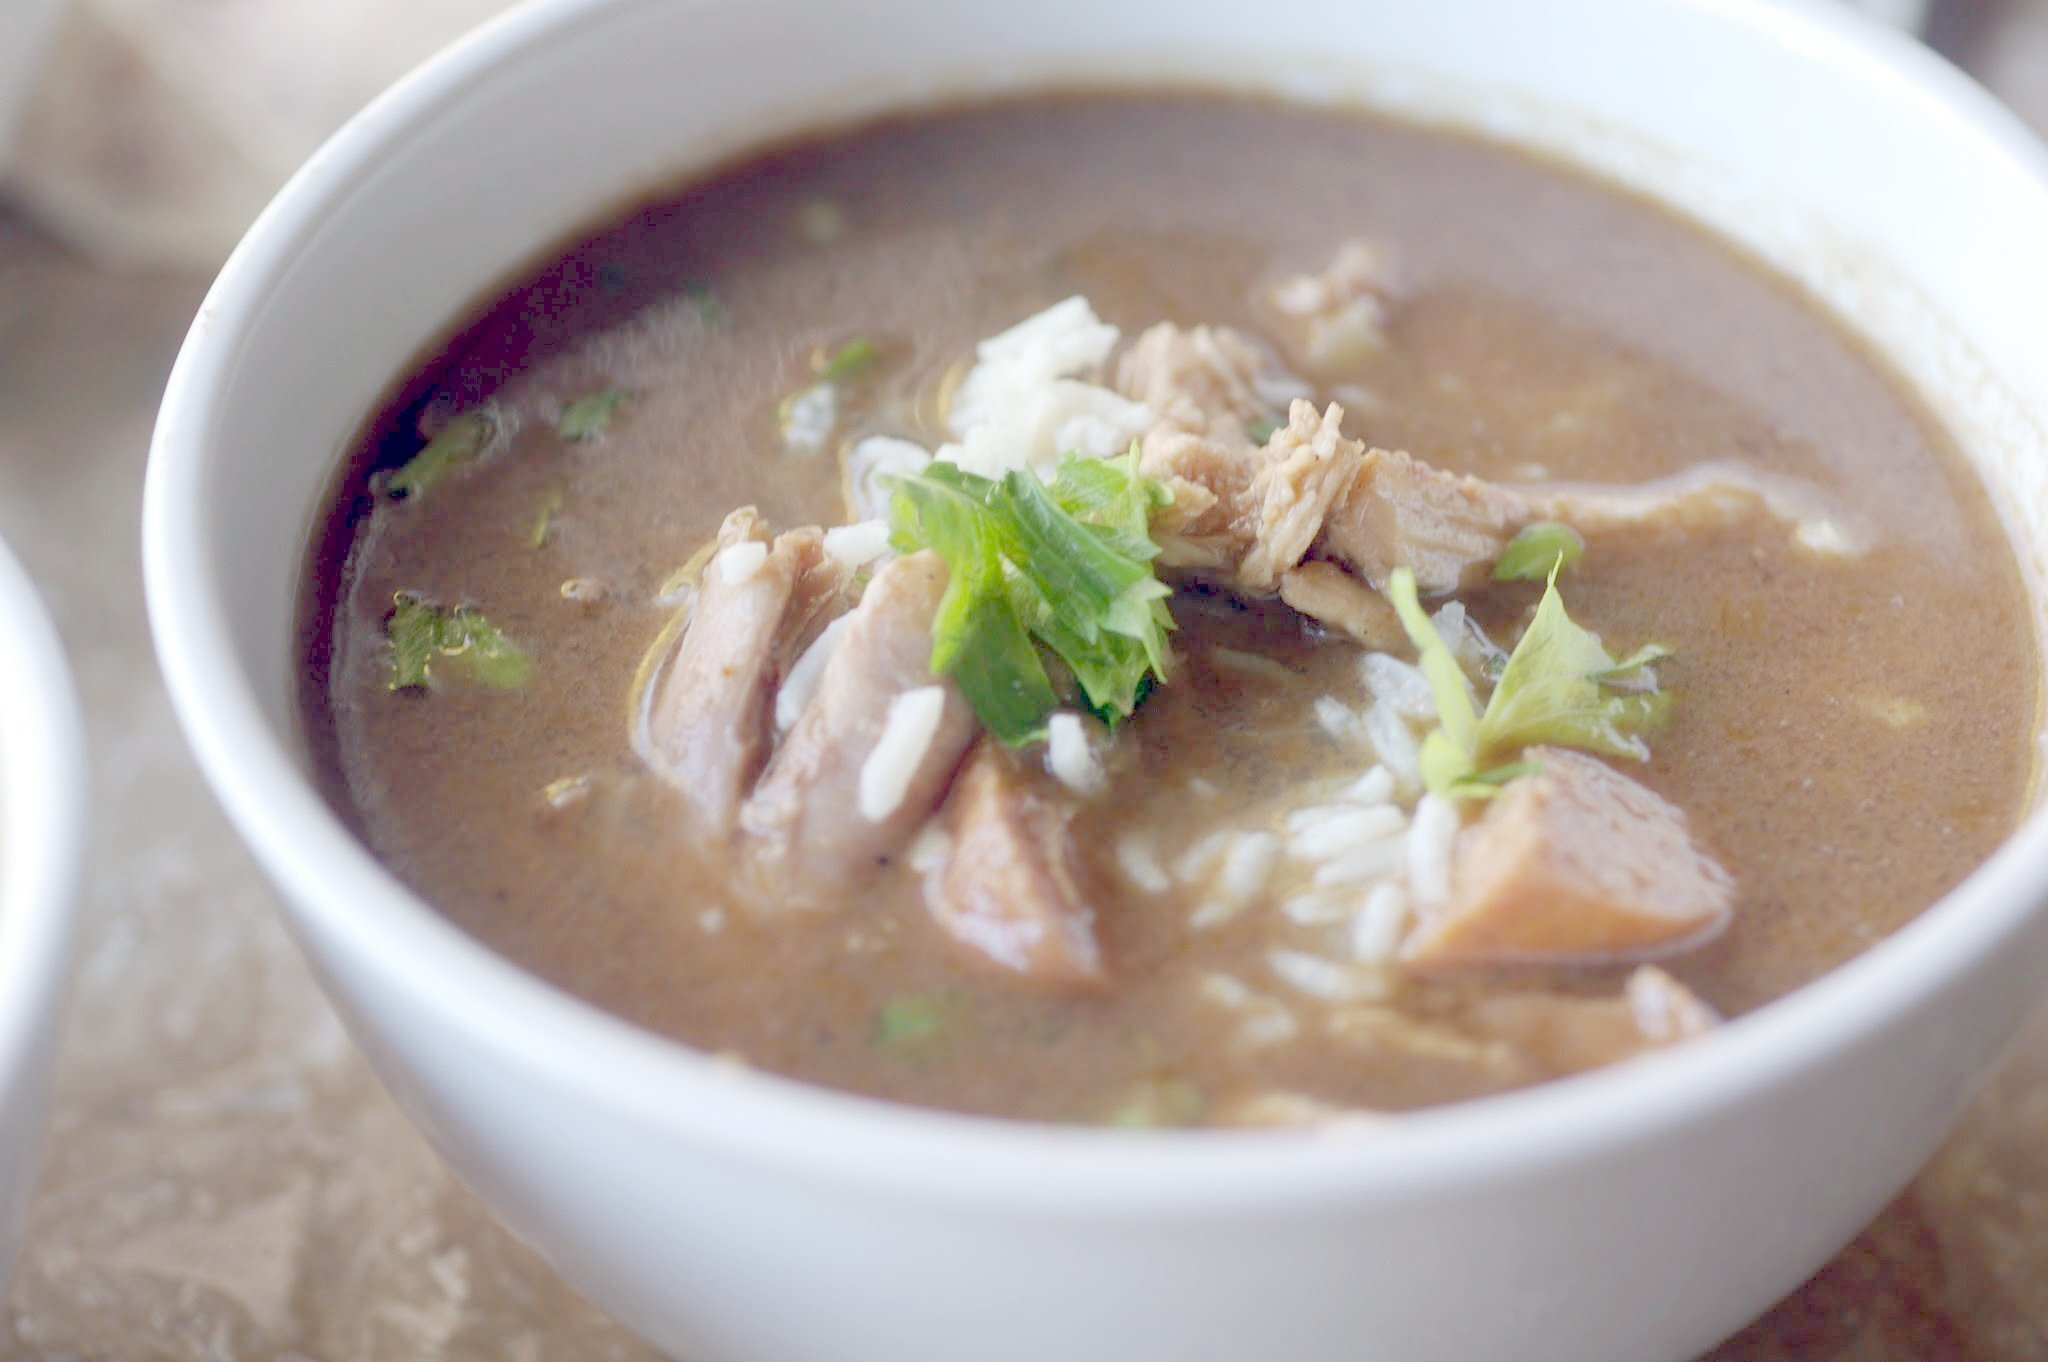 Leftover Turkey and Sausage Gumbo for #SundaySupper